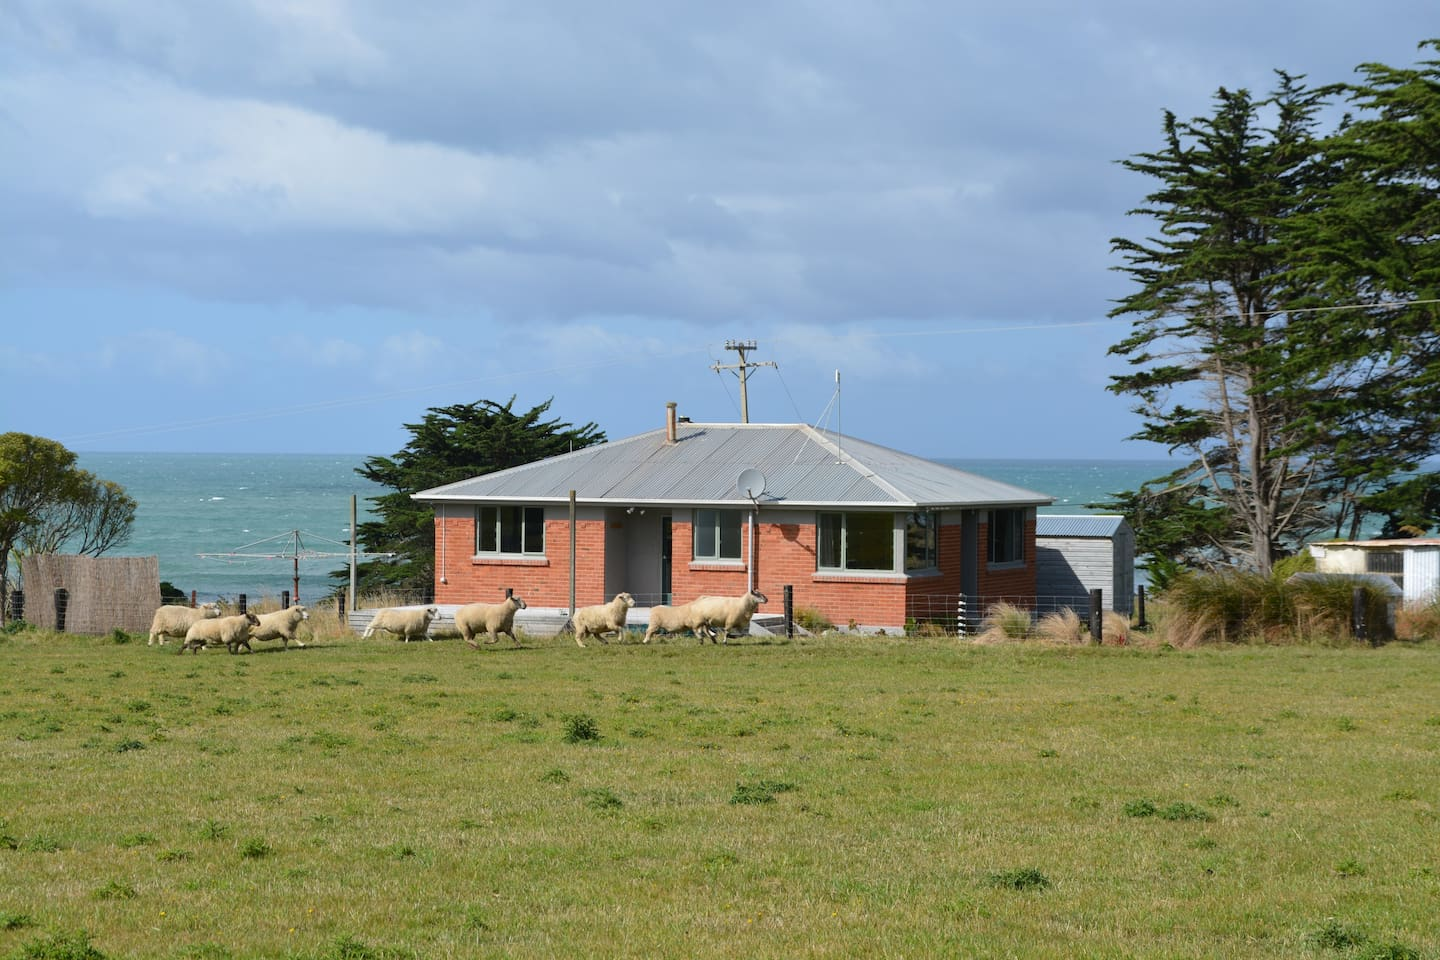 Coombe Hay Cottage, located on a working sheep and beef farm in the south of the South Island, NZ